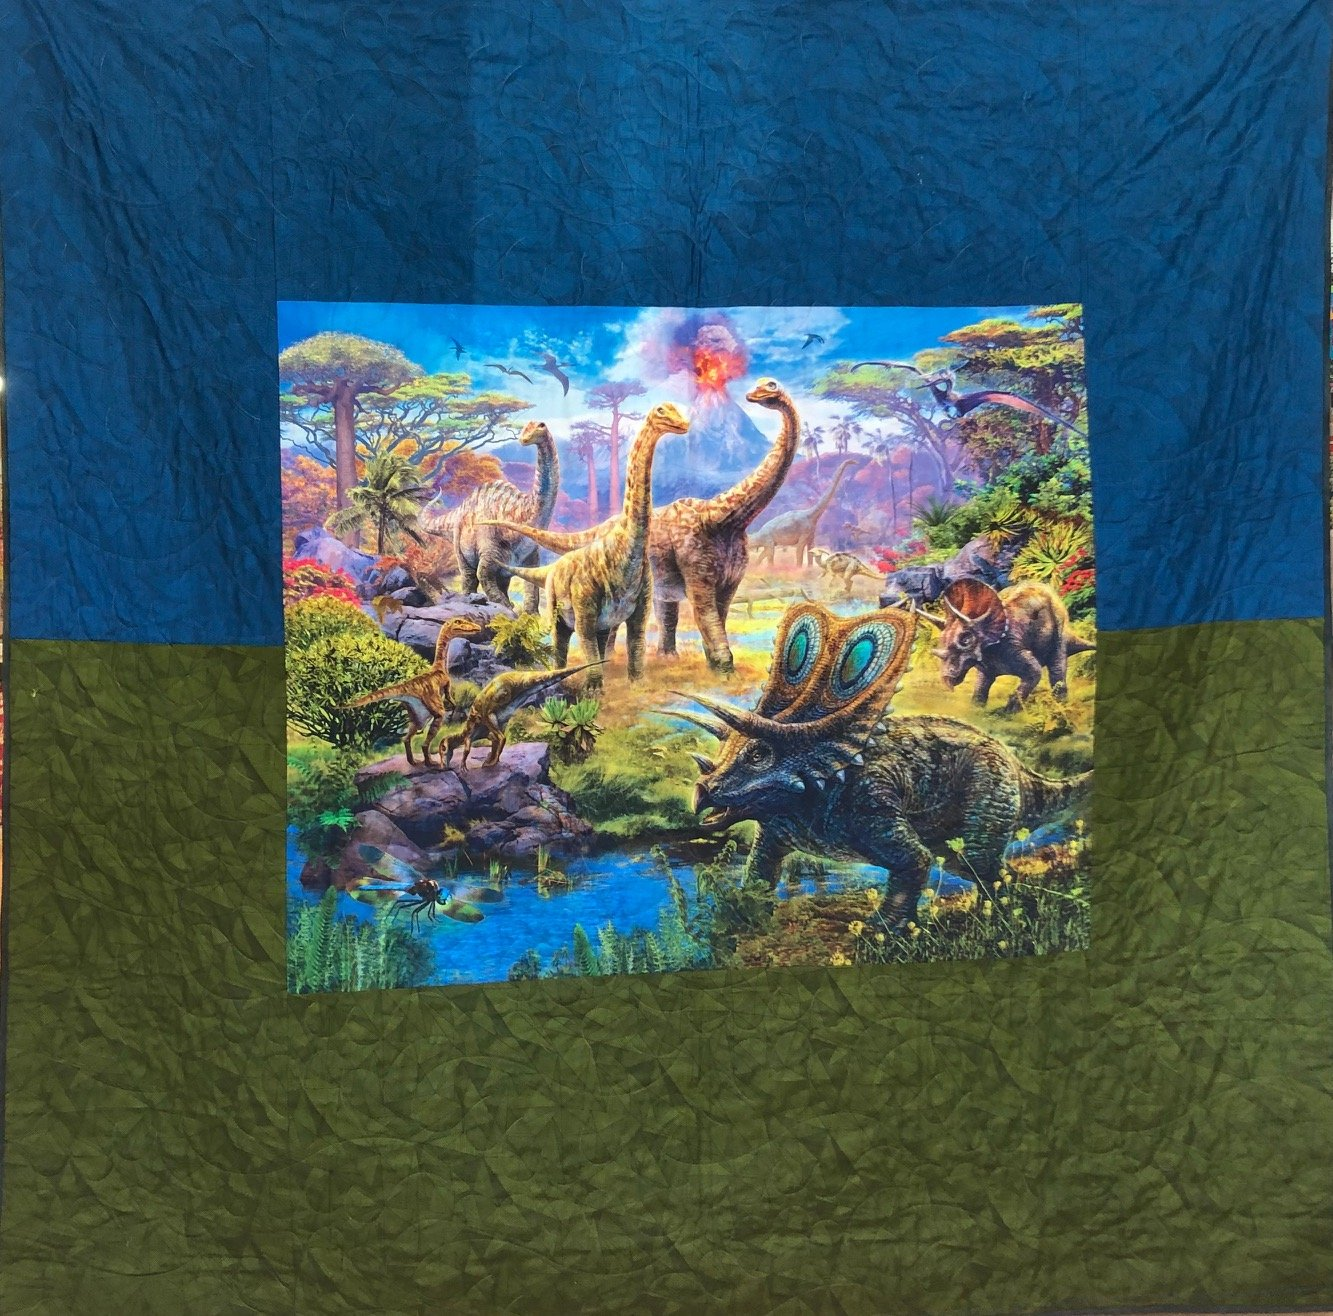 Backing kit for Disappearing Dinos quilt